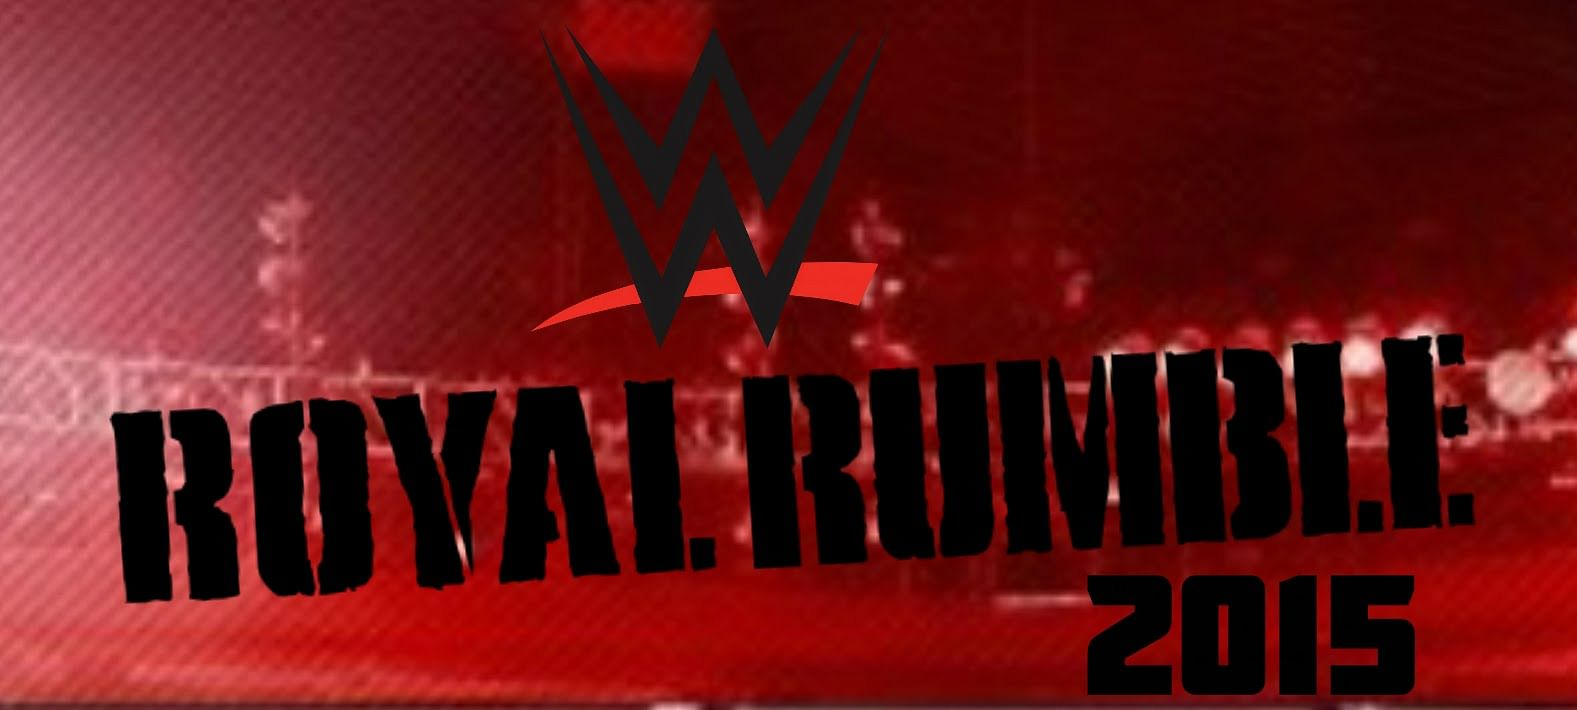 WWE confirm Royal Rumble 2015 details